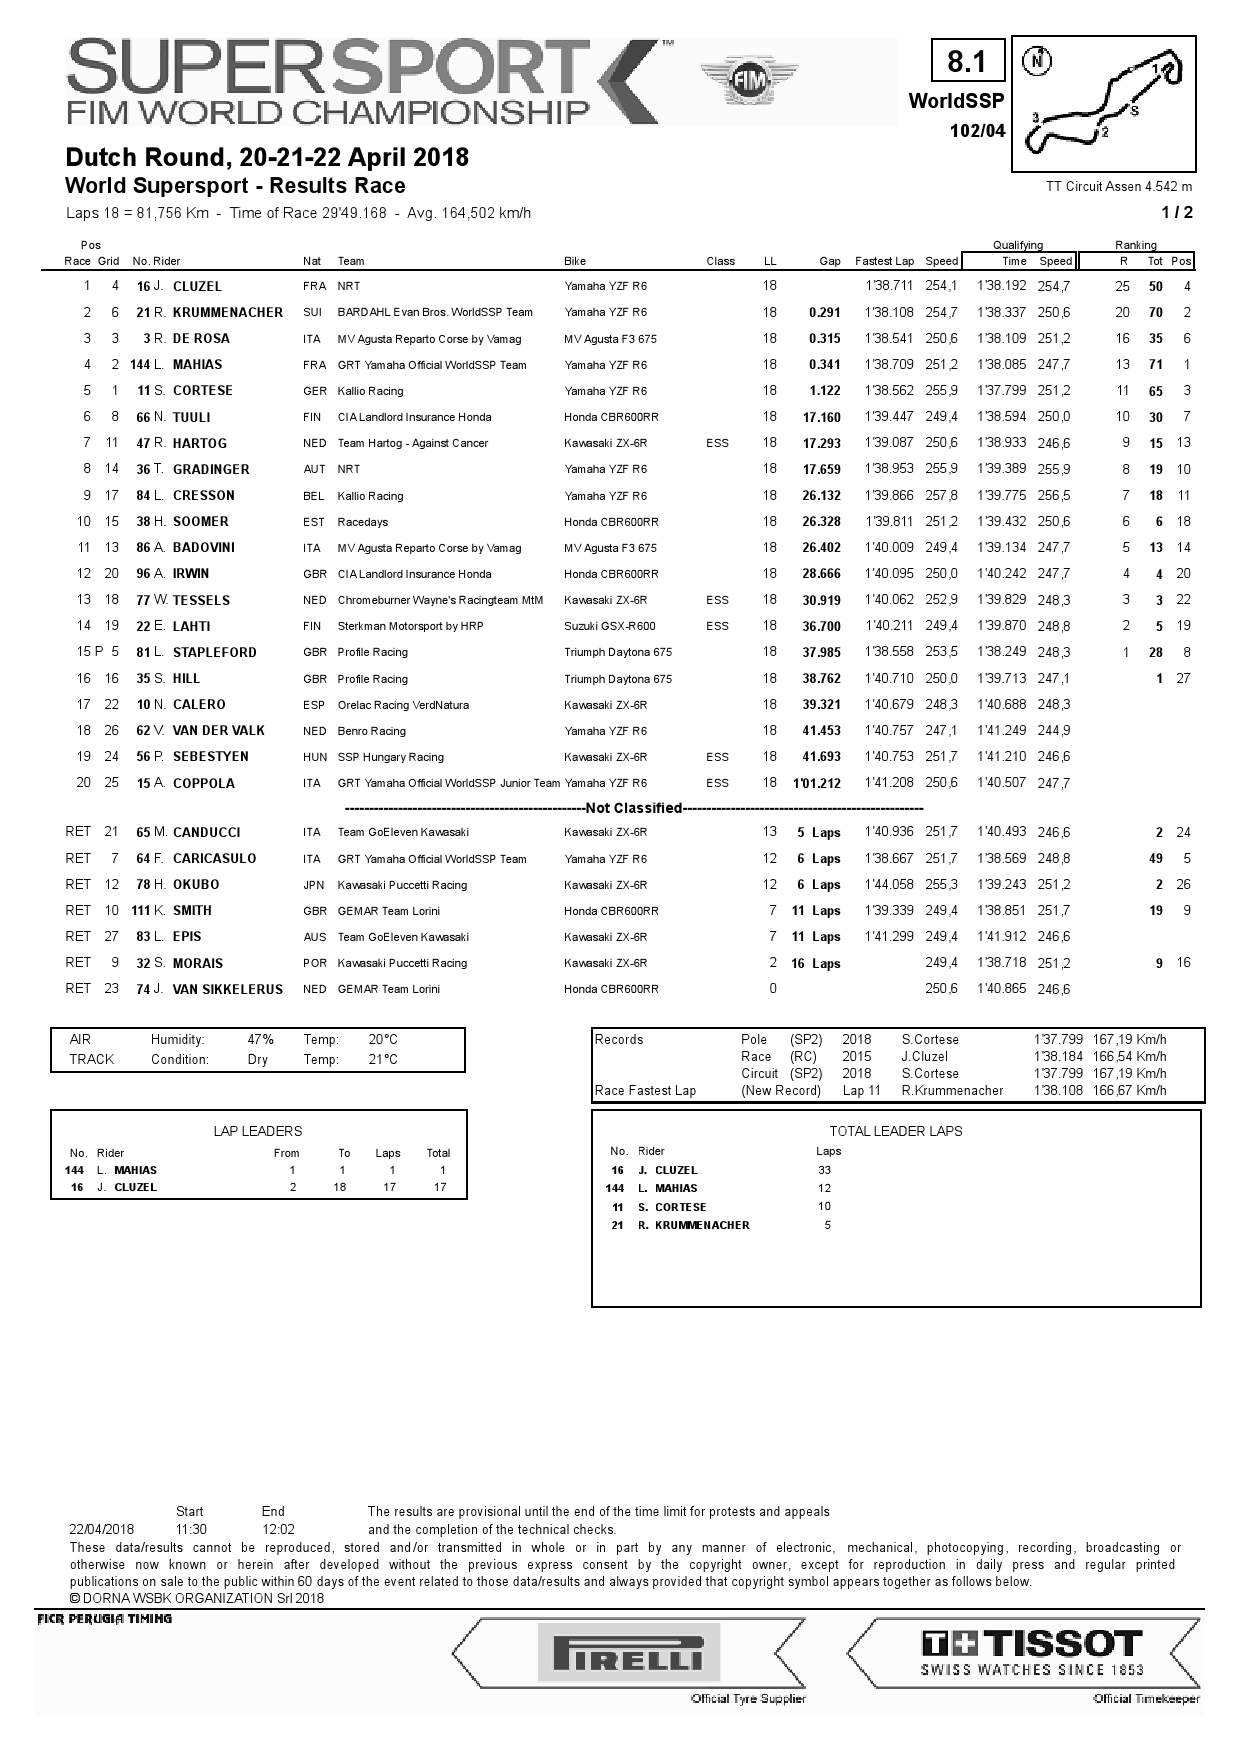 Результаты 4-го этапа World Supersport, TT Circuit Assen